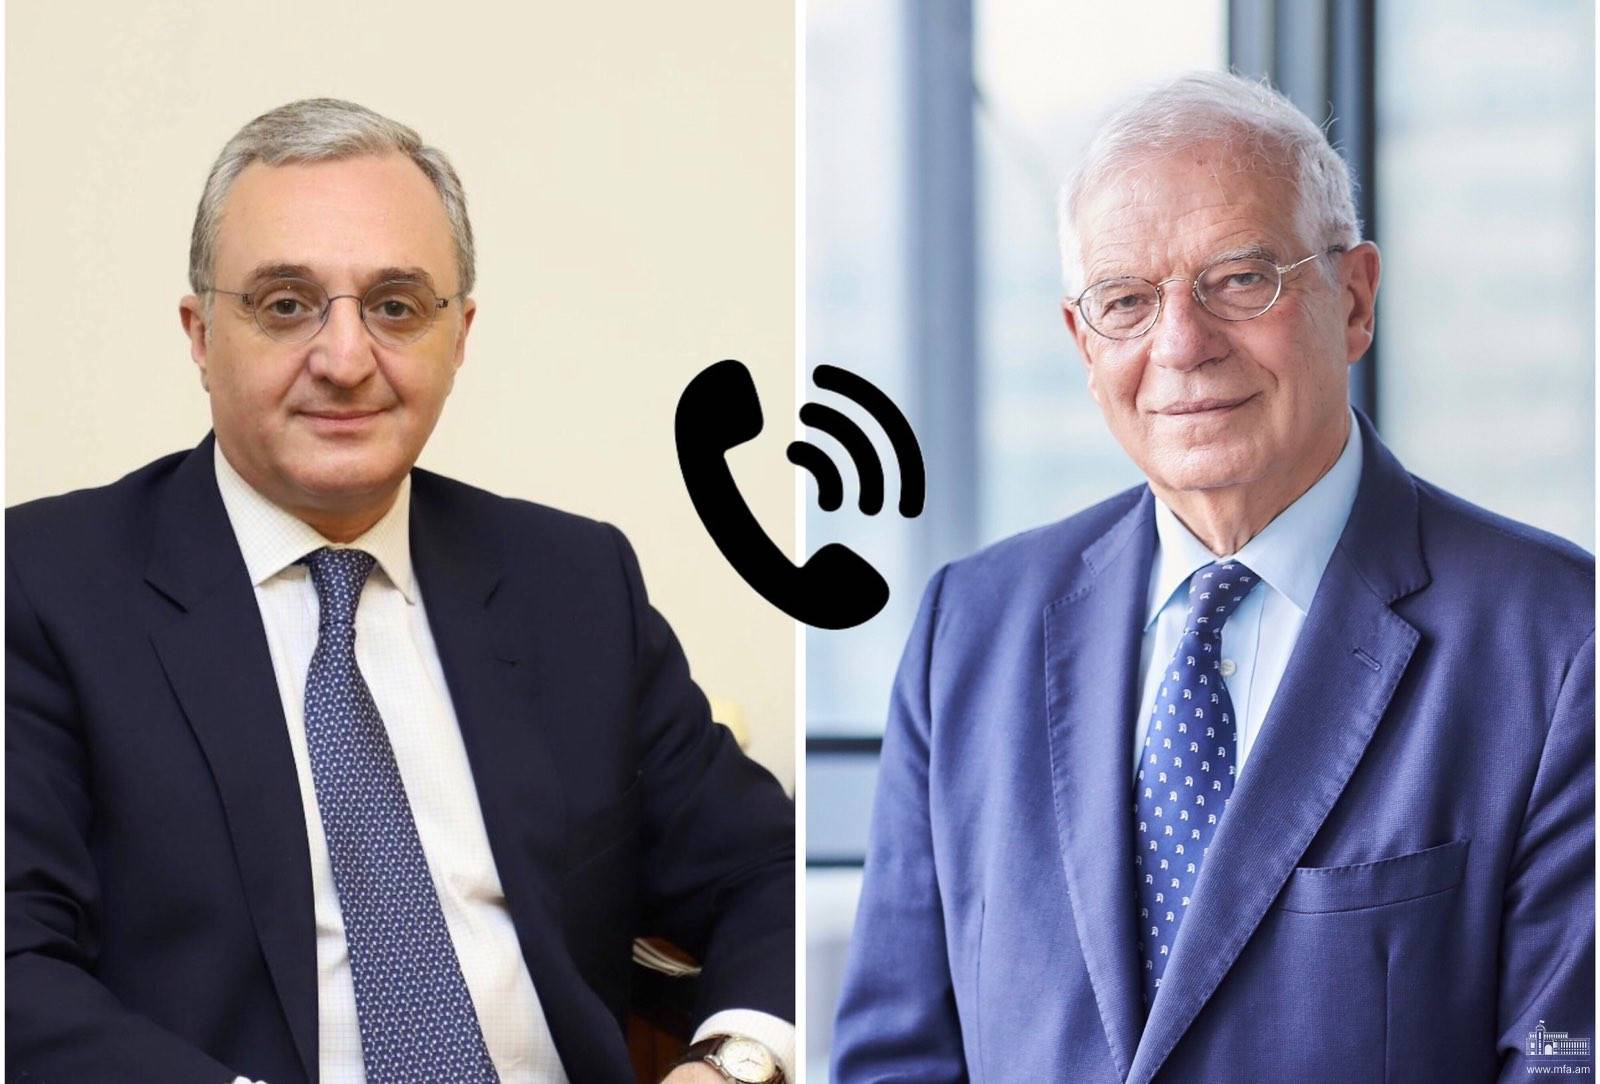 Phone conversation between Foreign Minister of Armenia Zohrab Mnatsakanyan and Josep Borrell, High Representative of the EU for Foreign Affairs and Security Policy, Vice-President of the European Commission